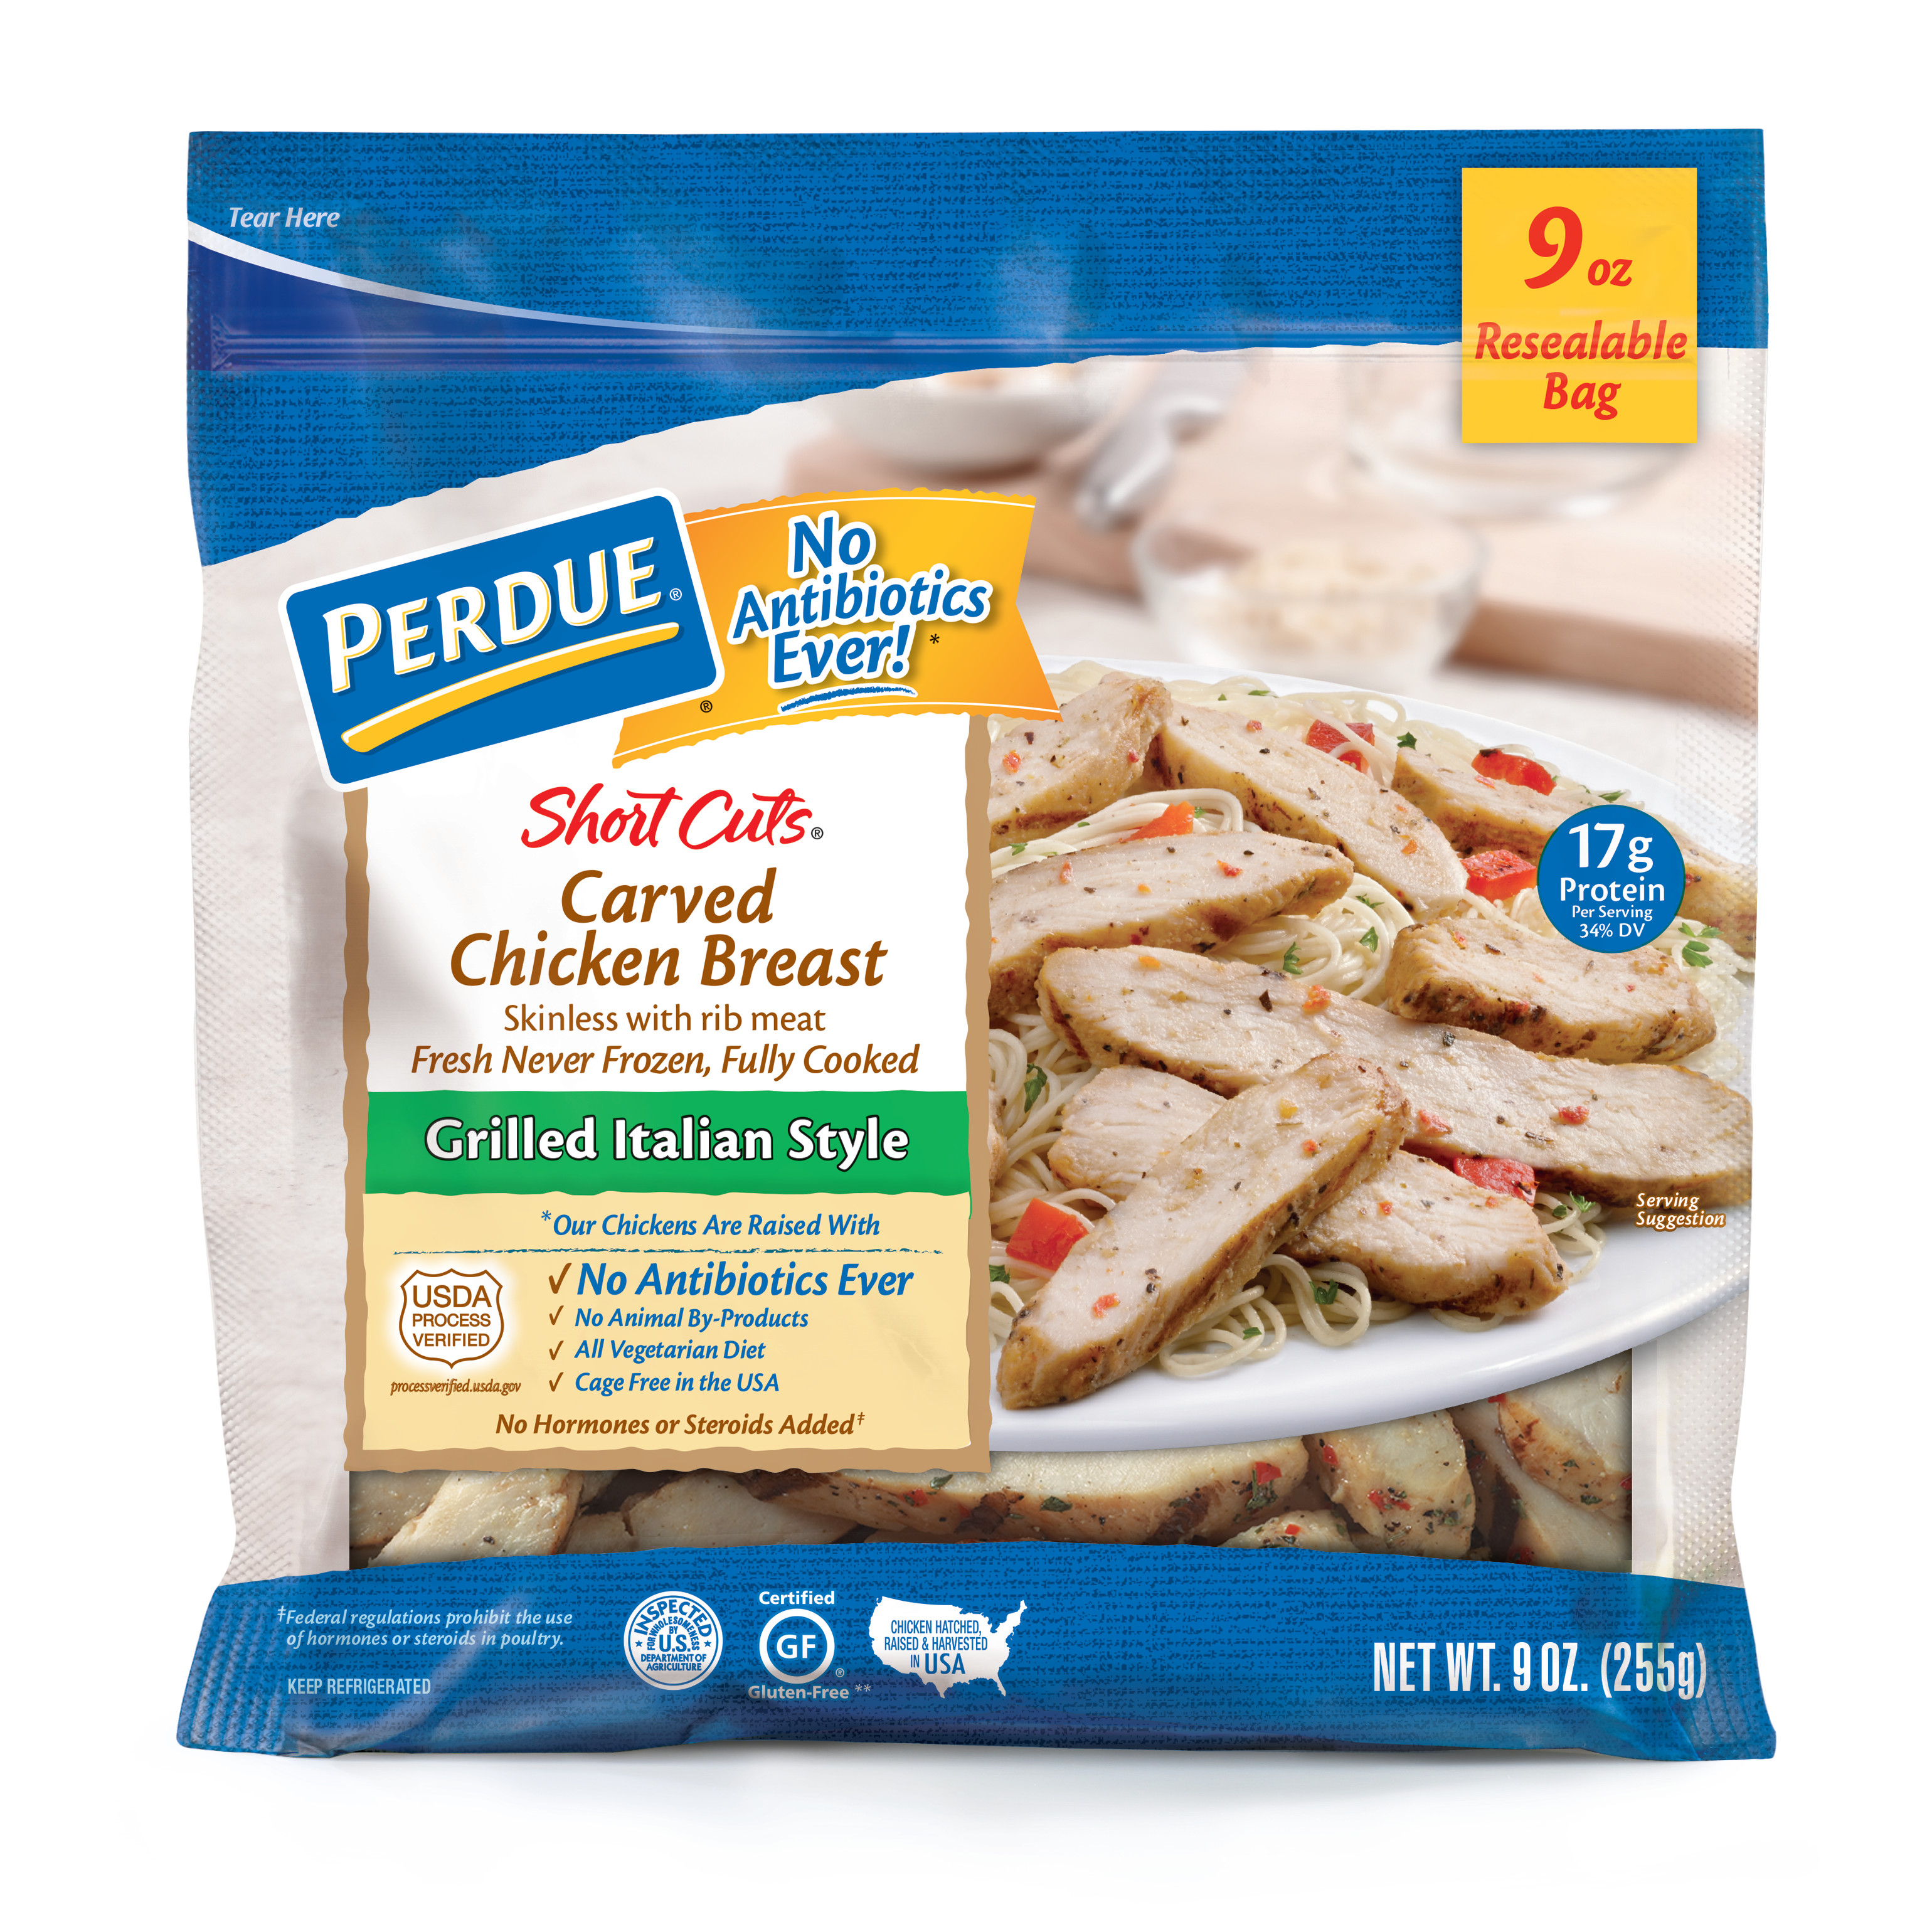 PERDUE SHORT CUTS Carved Chicken Breast Grilled Italian Style (9 oz.)